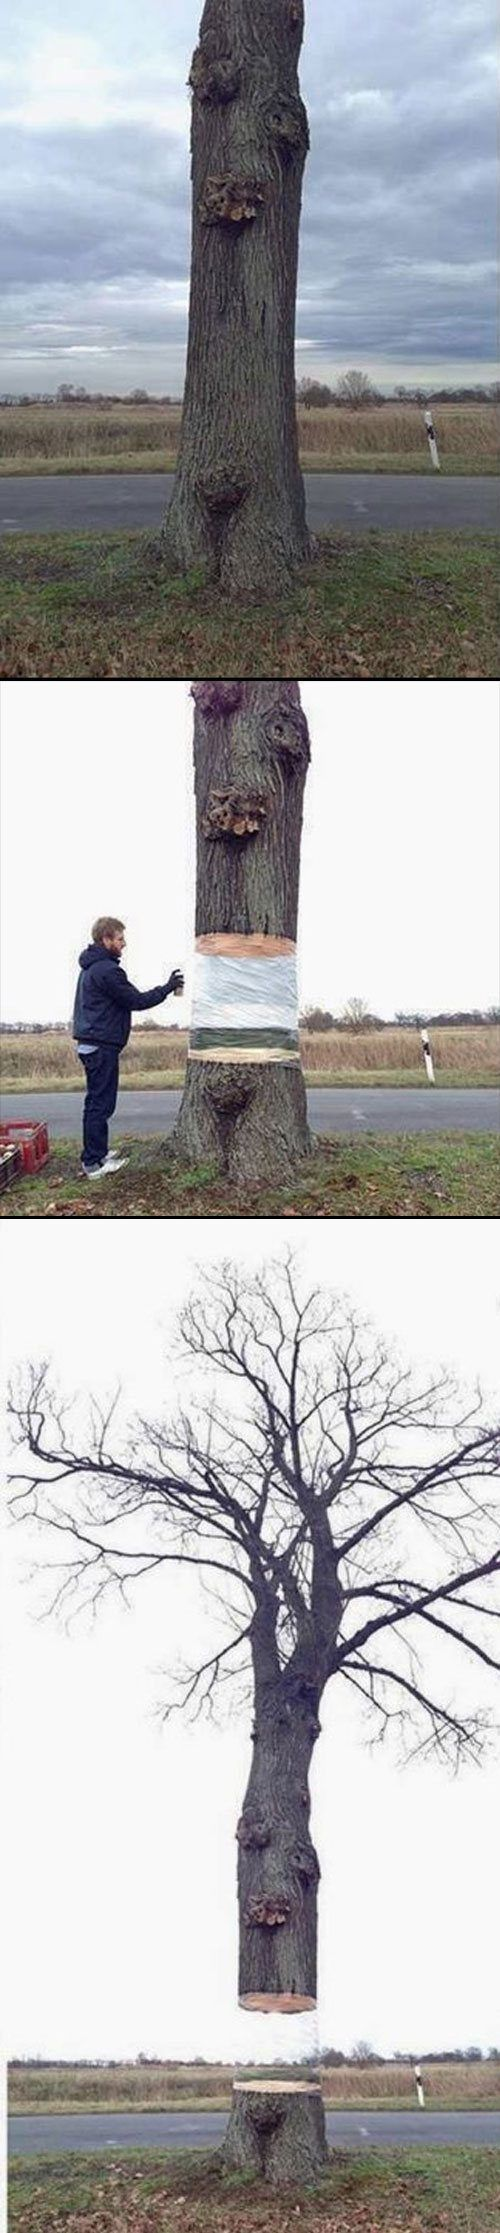 nike lunarglide 2  German artists Daniel Siering and Mario Shu painted a section of a tree to make it look like it  39 s missing